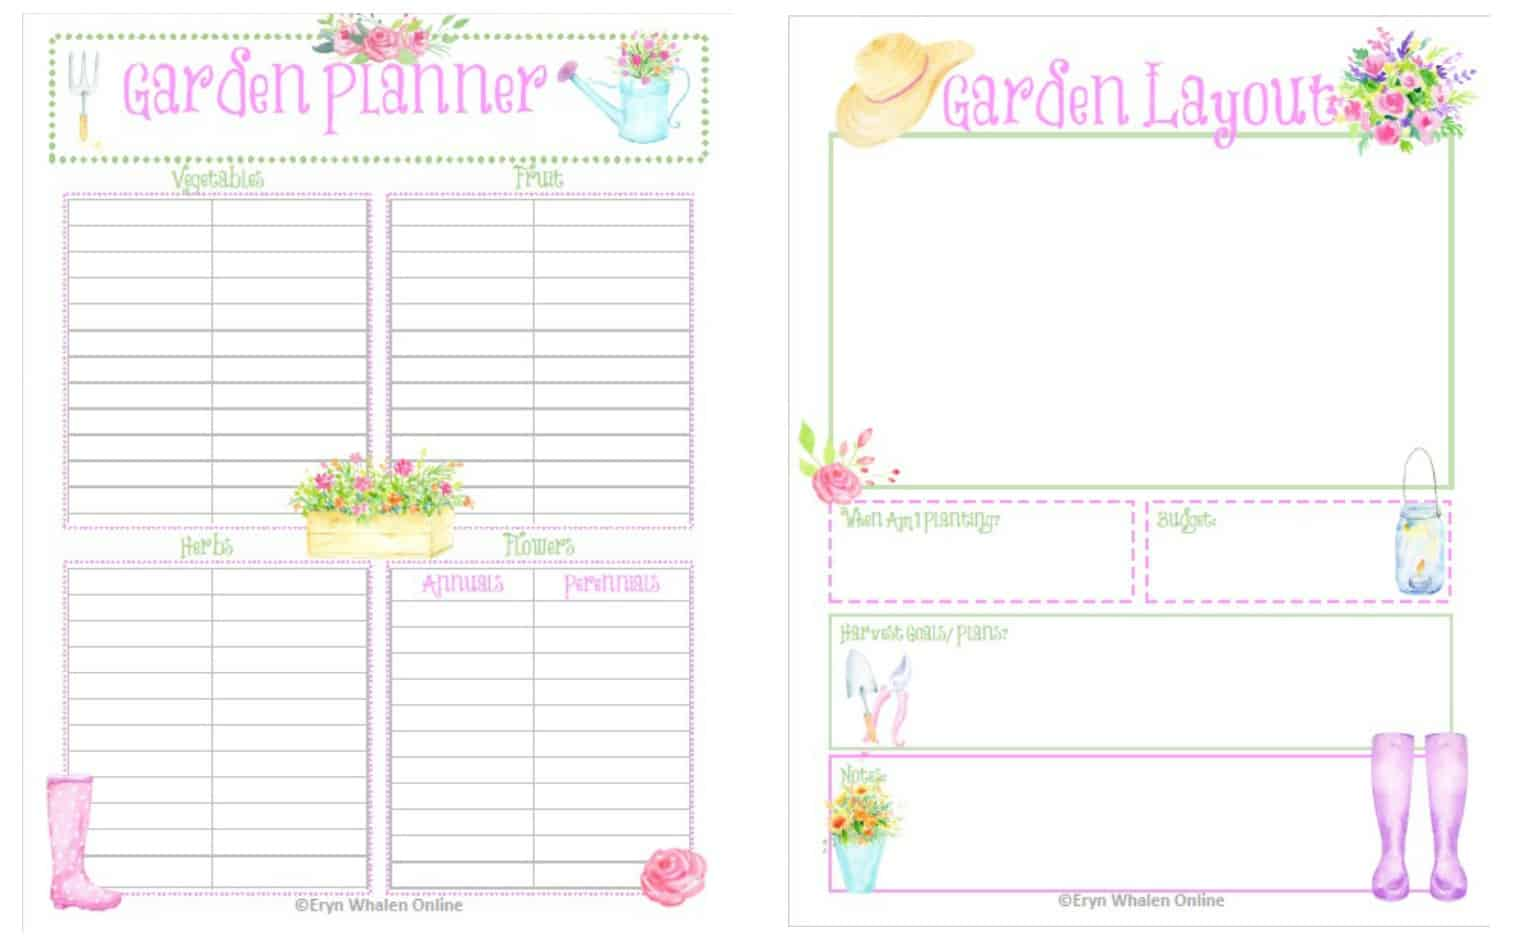 picture regarding Free Printable Garden Planner identified as Backyard garden Creating Totally free Printables - Eryn Whalen On the internet